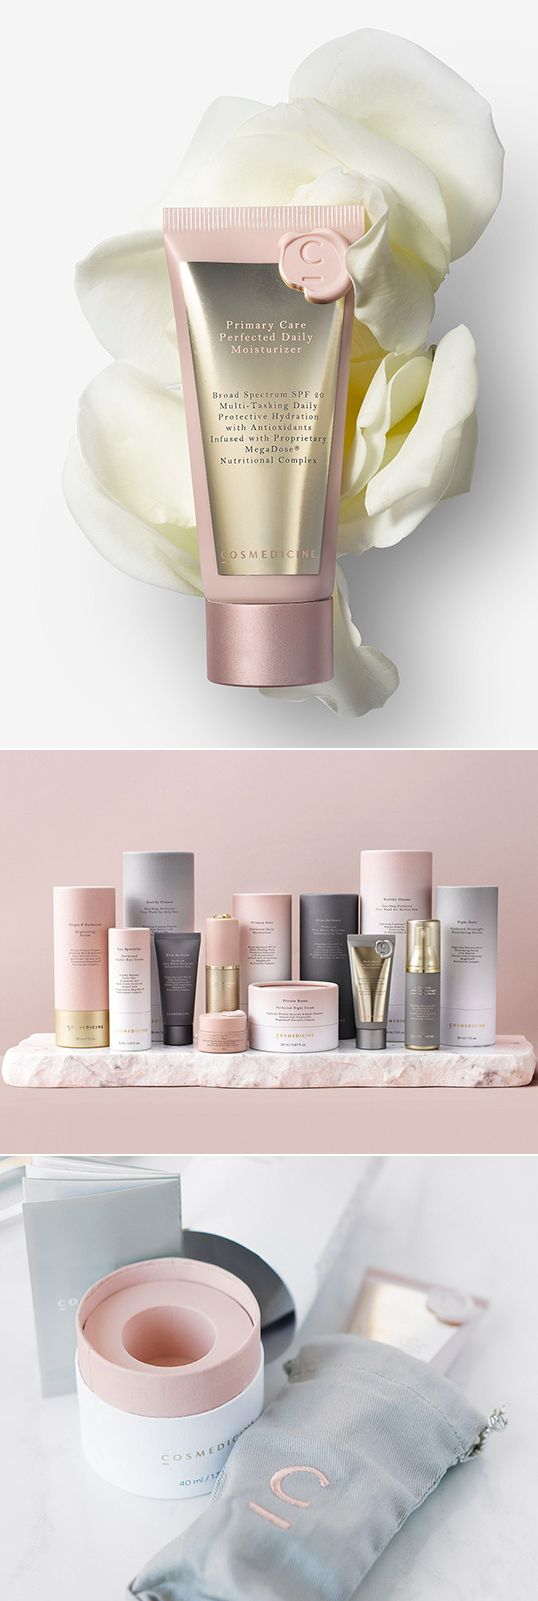 A beautiful packaging range with a lovely arrangement to communicate the softness and exclusive character of the products...